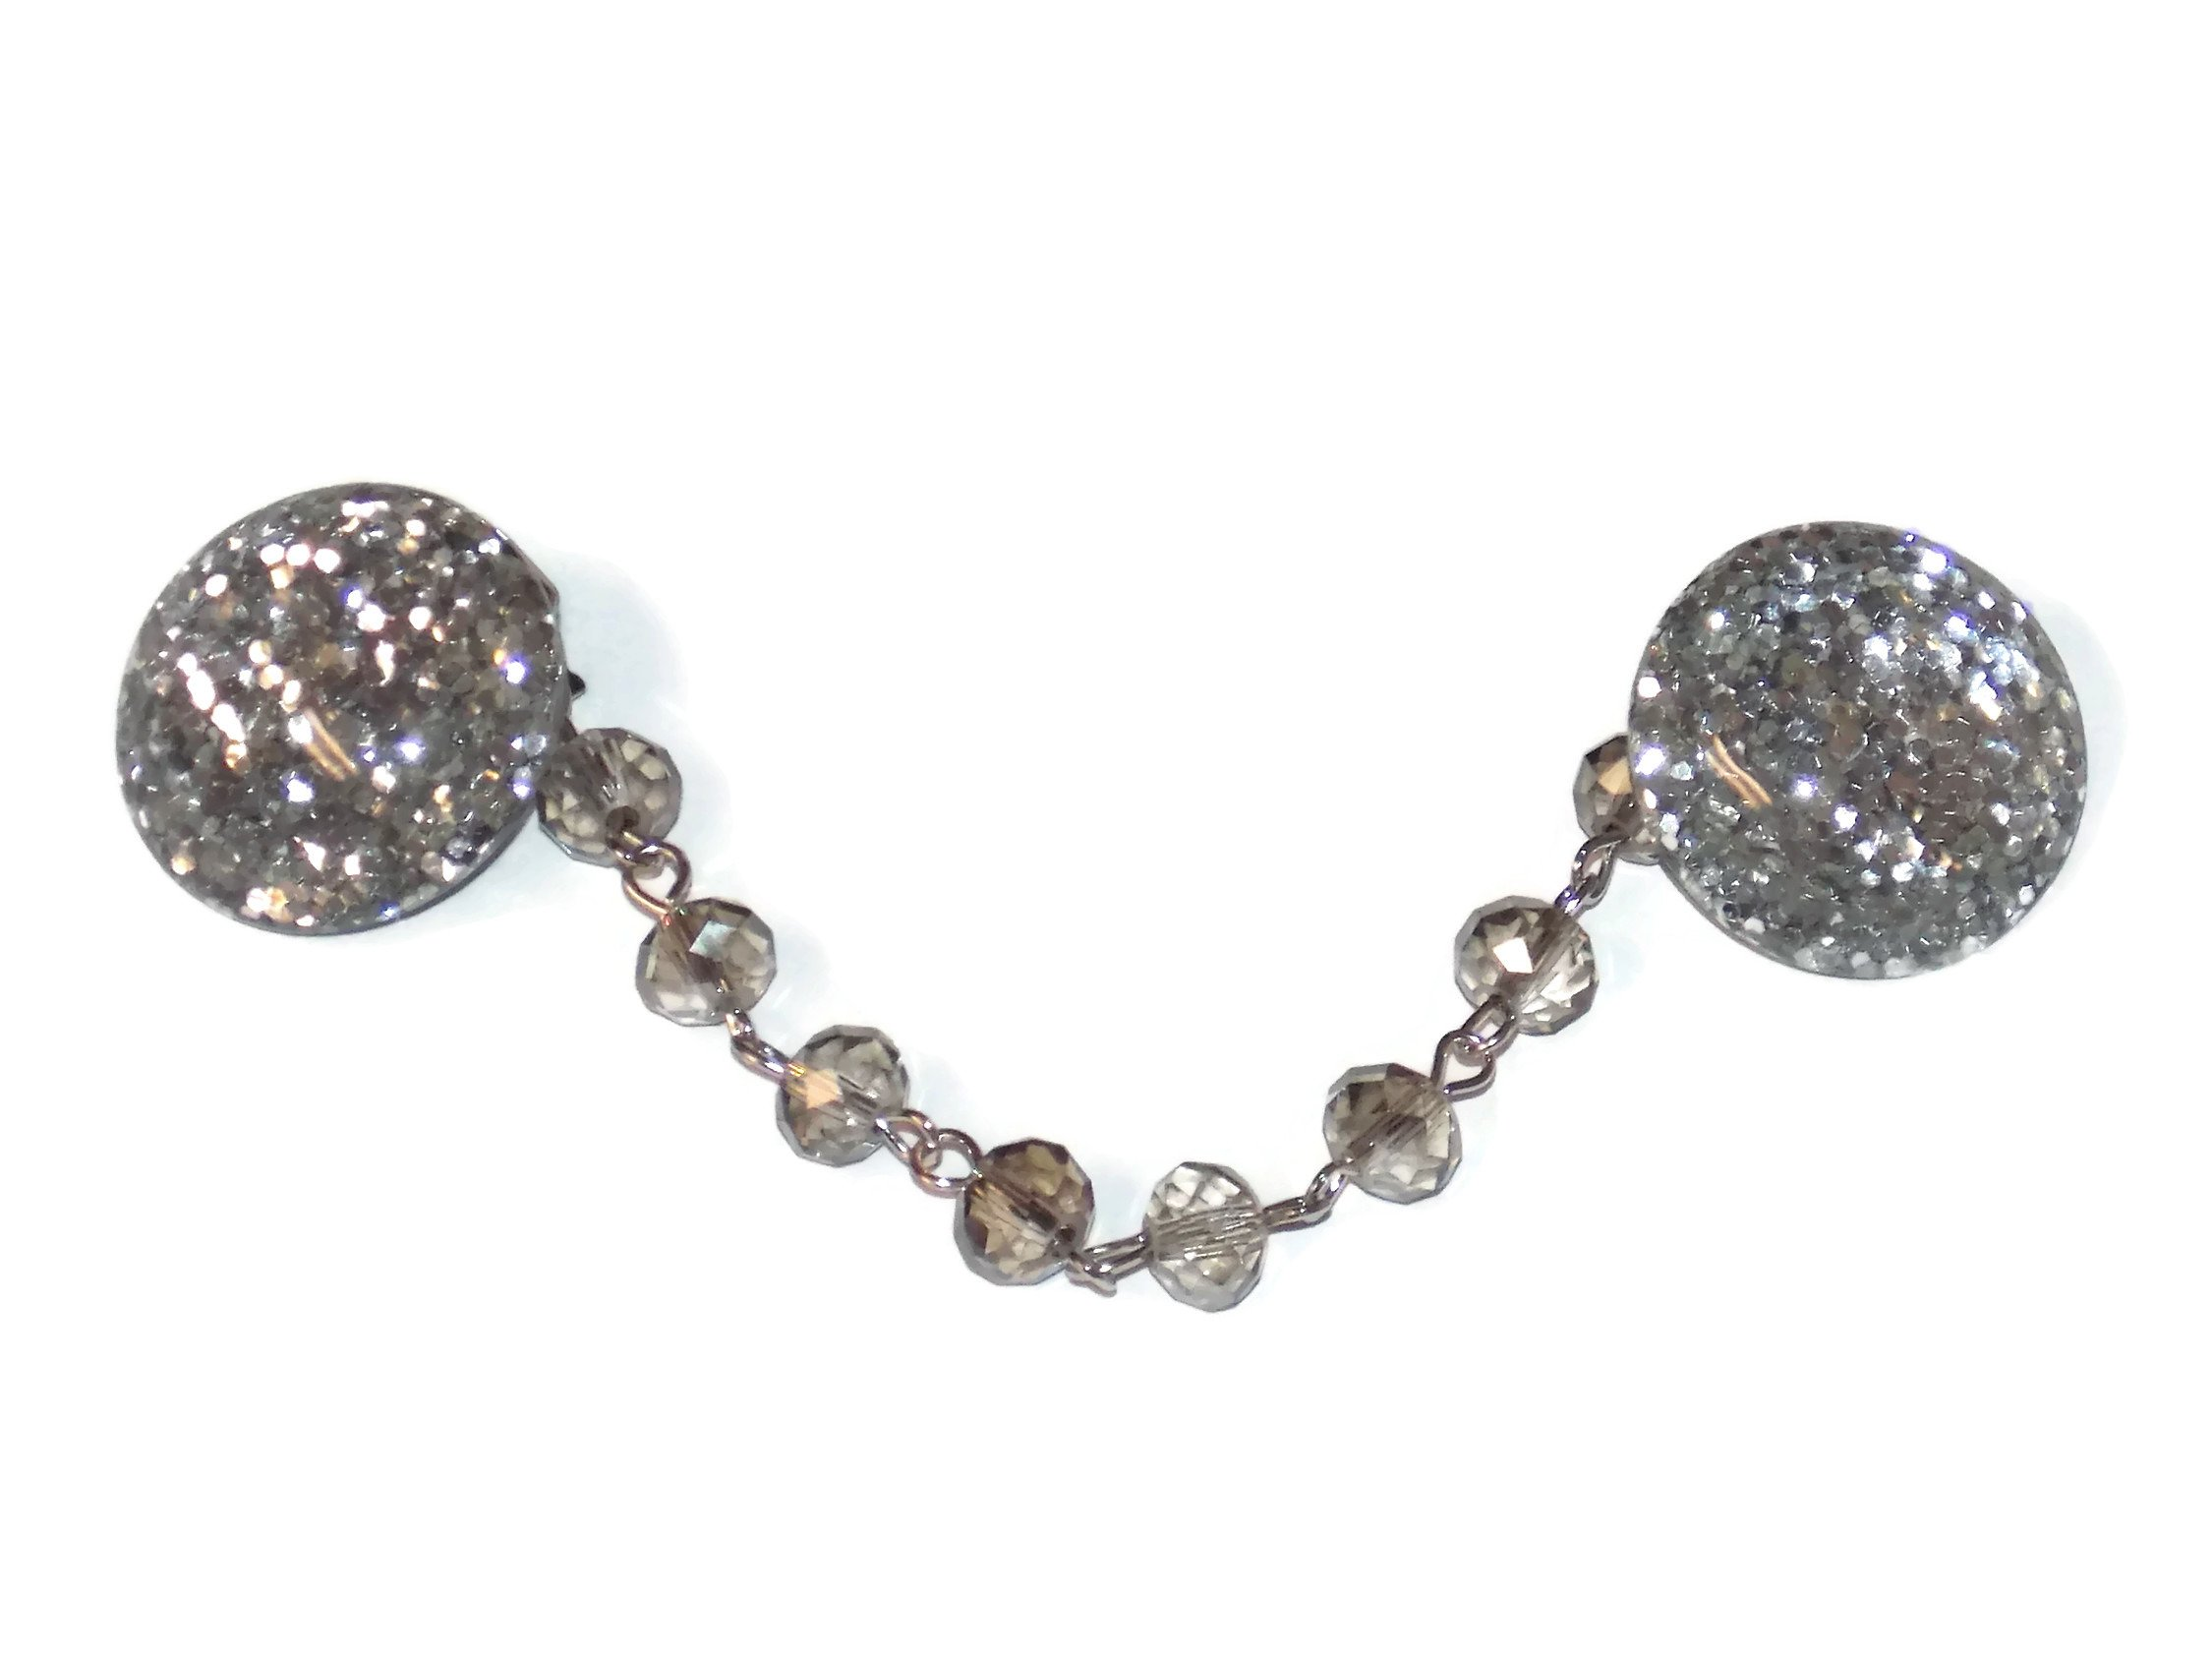 Old School Geekery Large Silver Glitter Sweater Clips with a 4 Inch Beaded Tone Chain Rockabilly Collar Clips